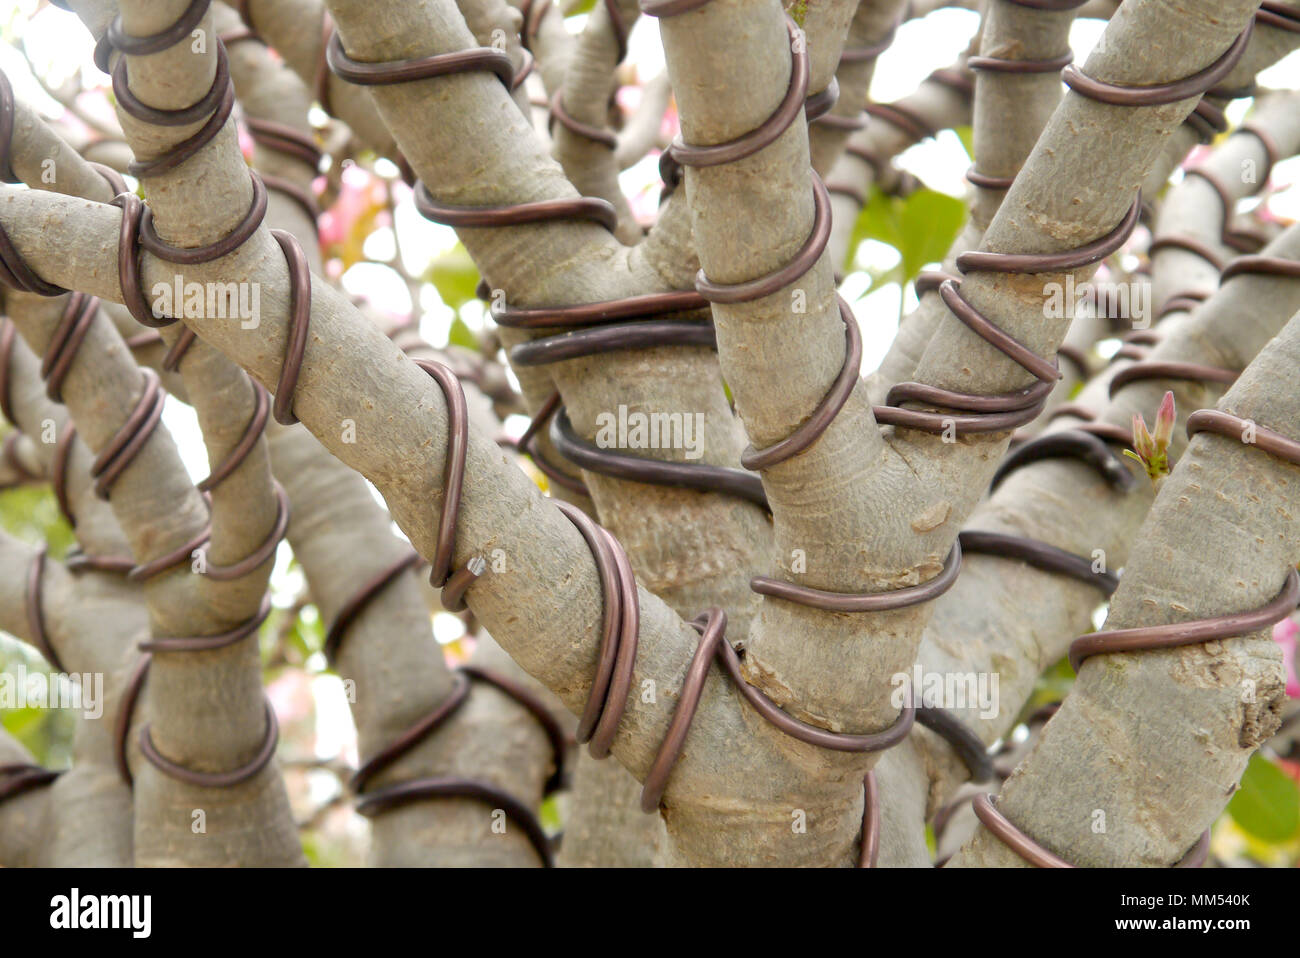 Pleasant Bonsai Tree Wrapped Wire Stock Photo 184509715 Alamy Wiring 101 Mecadwellnesstrialsorg